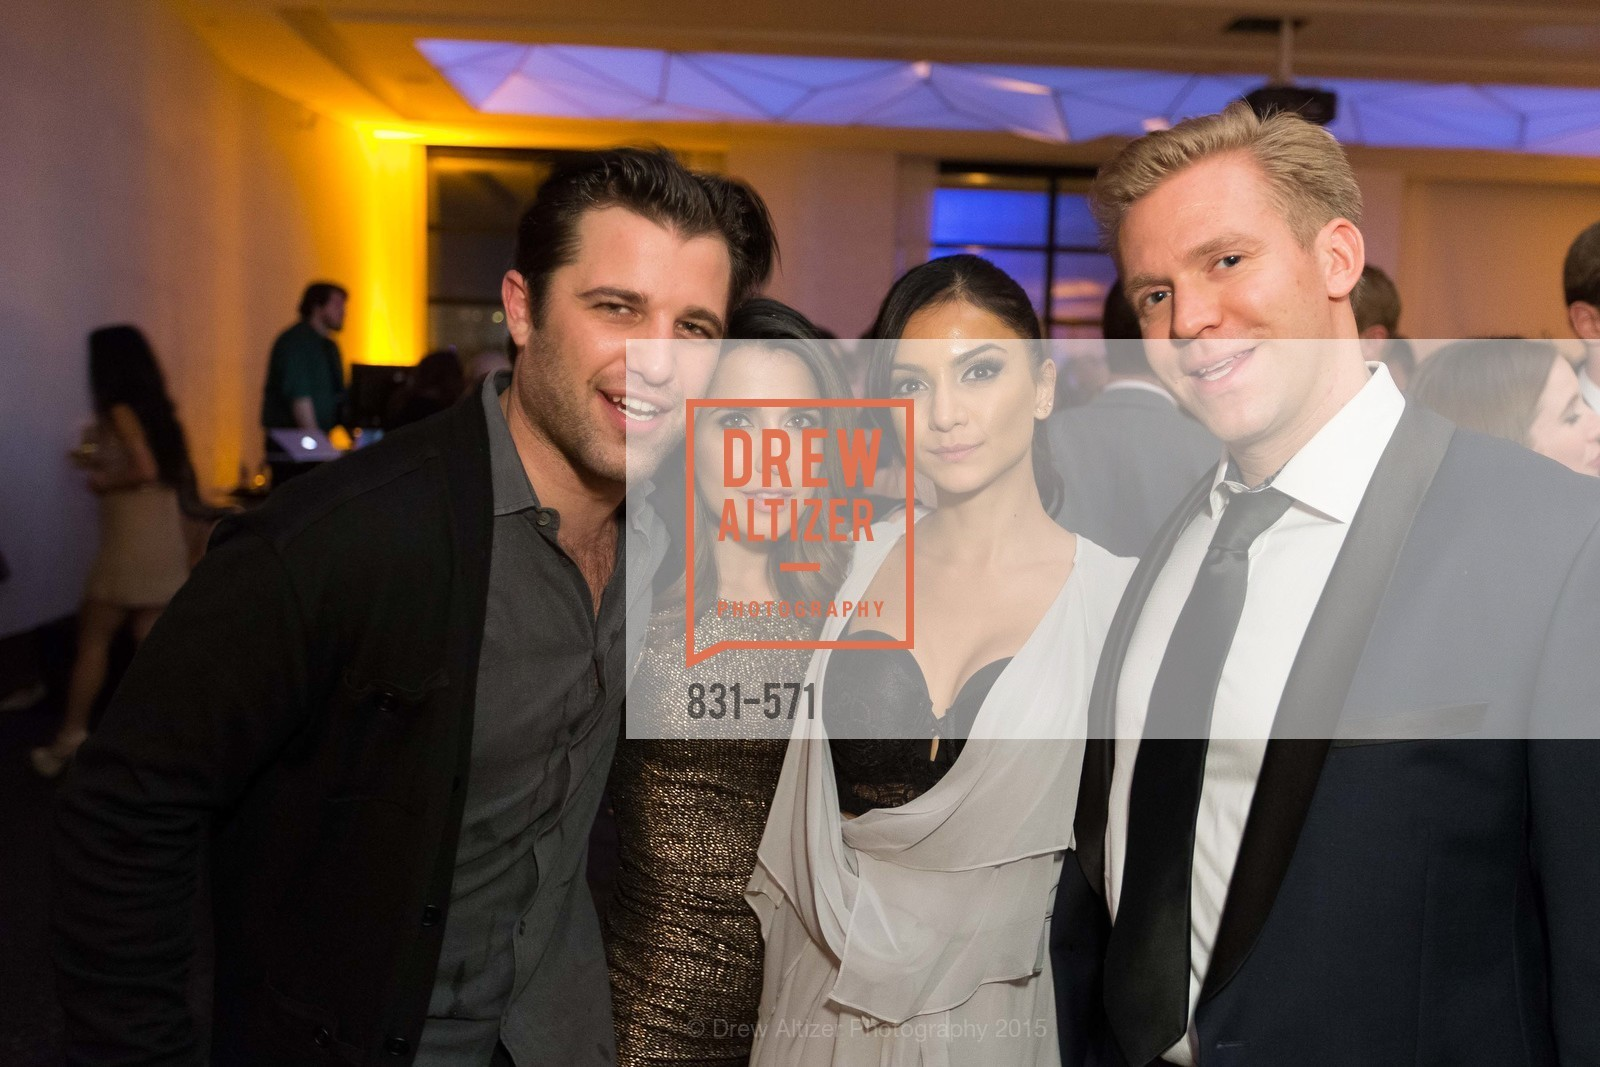 Michael Reyes, Mari Saleh, Tara Dolonazar, Tristan Pikes, The 10th Annual San Francisco Social, W Hotel. 181 3rd St, November 21st, 2015,Drew Altizer, Drew Altizer Photography, full-service event agency, private events, San Francisco photographer, photographer California